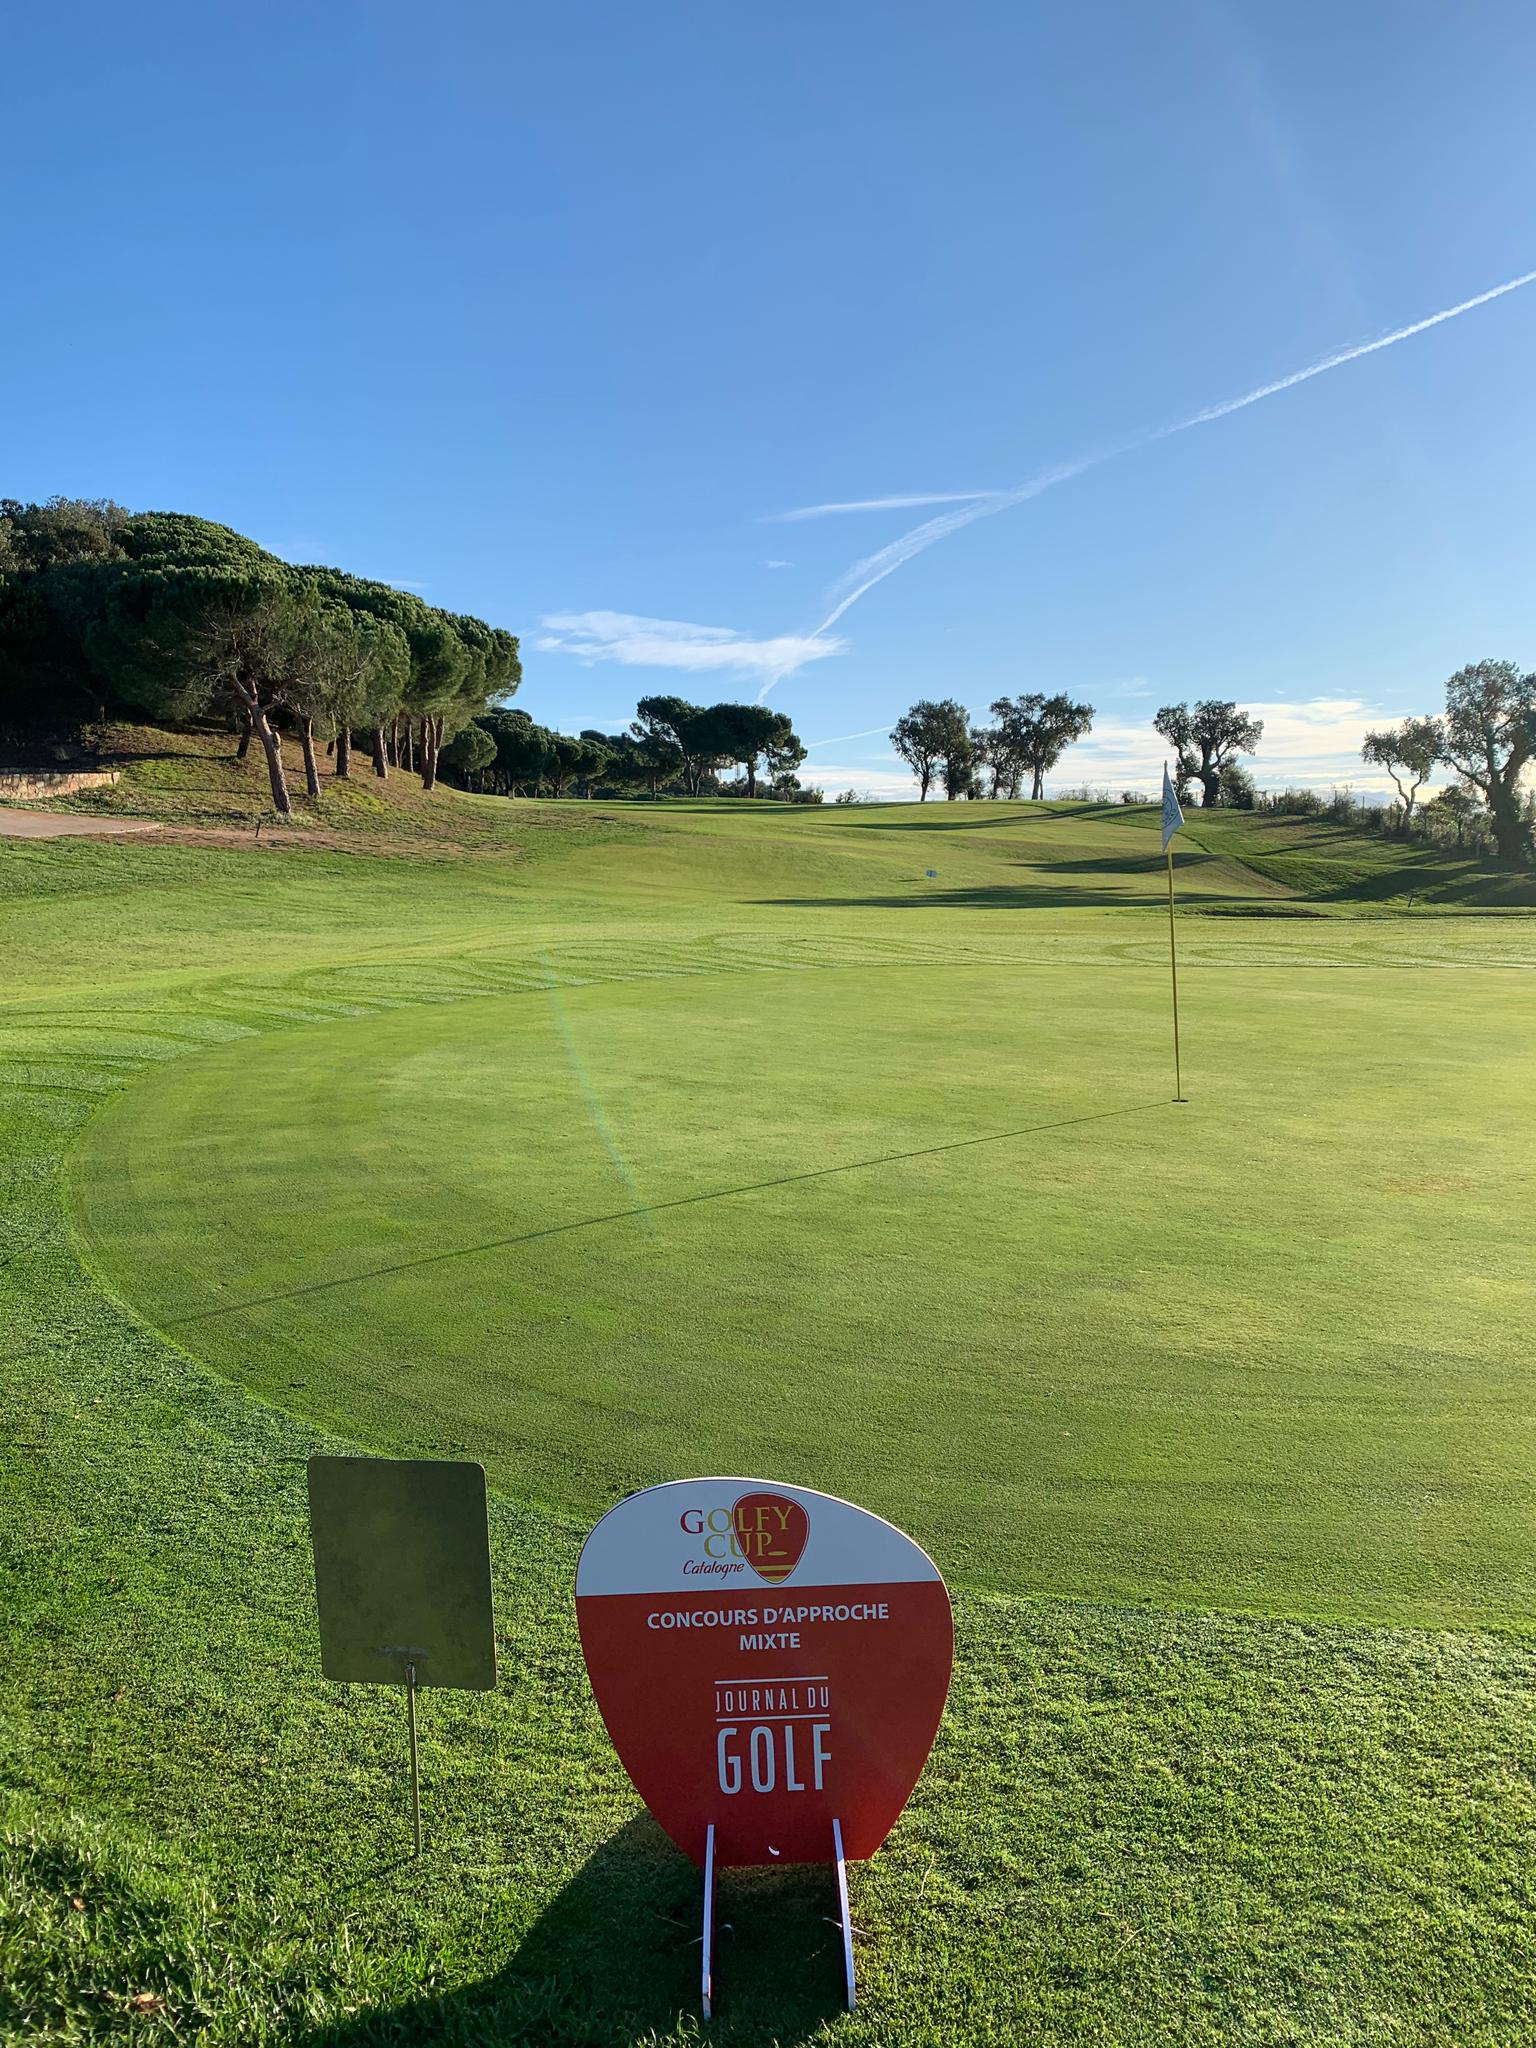 WhatsApp-Image-2019-11-07-at-09.51.59 Golfy Cup Catalogne 2019